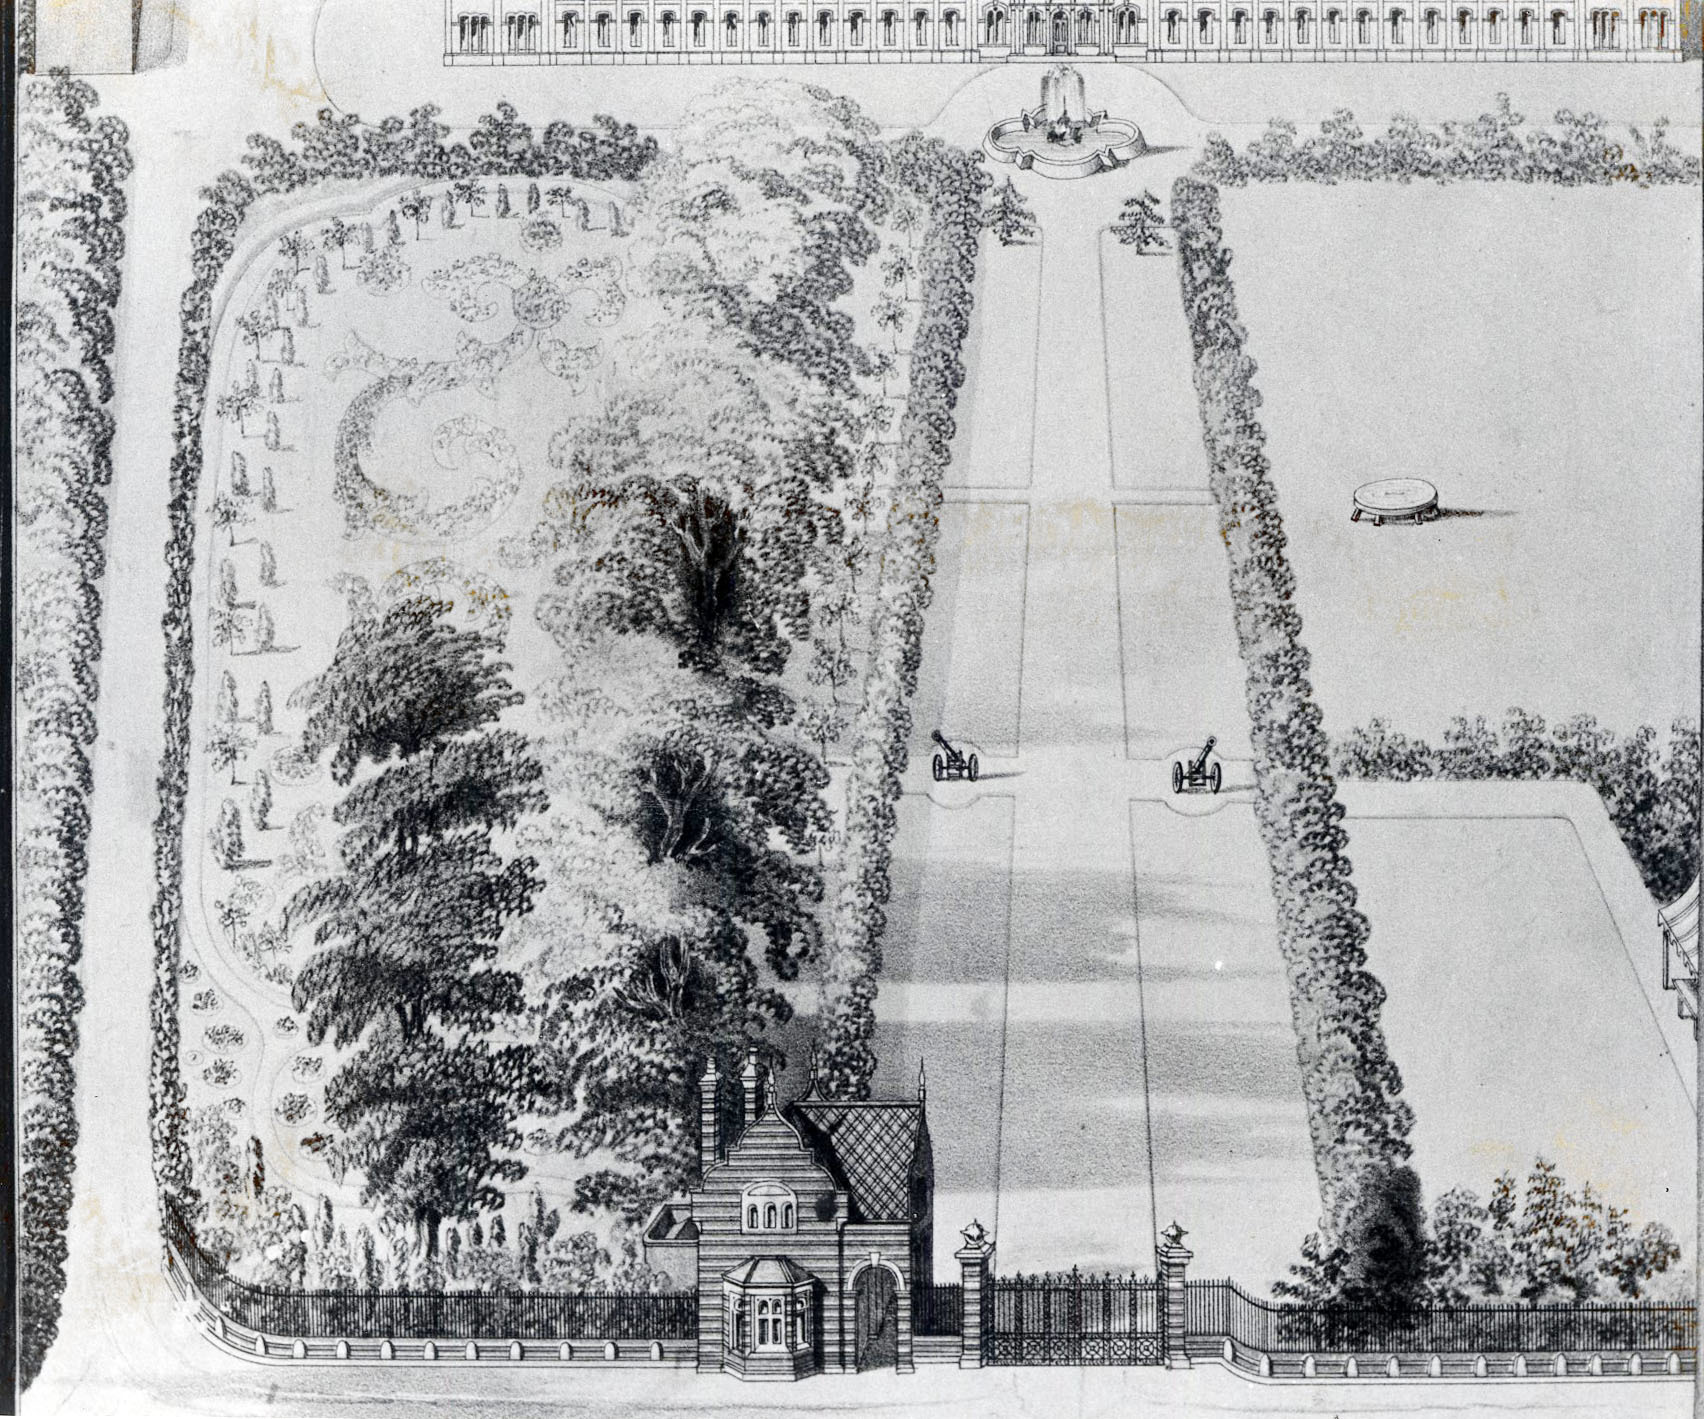 The pleasure grounds from Sansome Walk as they would have looked in around 1865